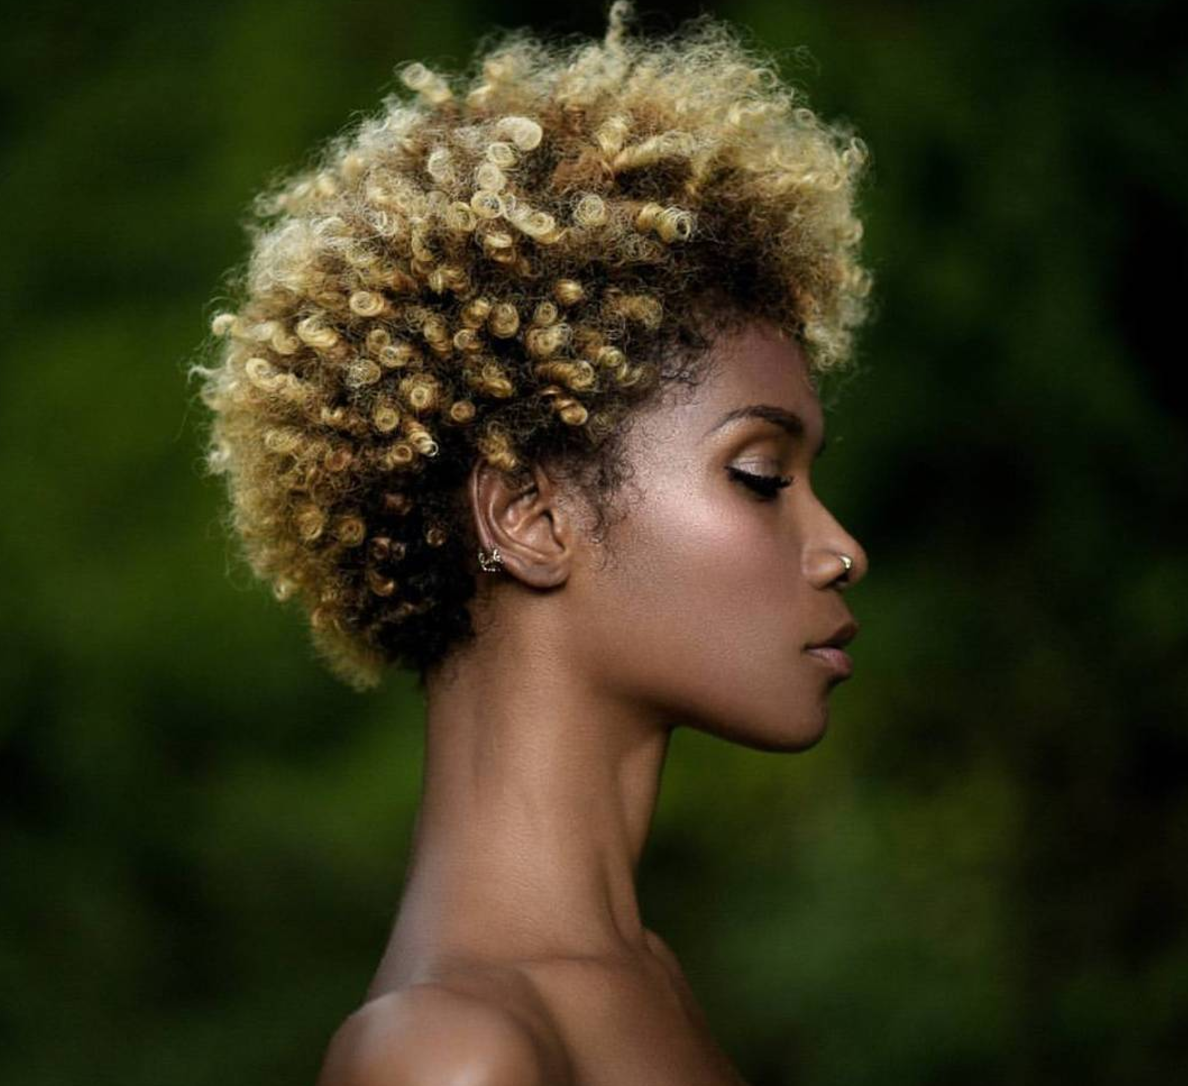 10 Biggest Curly Hair Mistakes